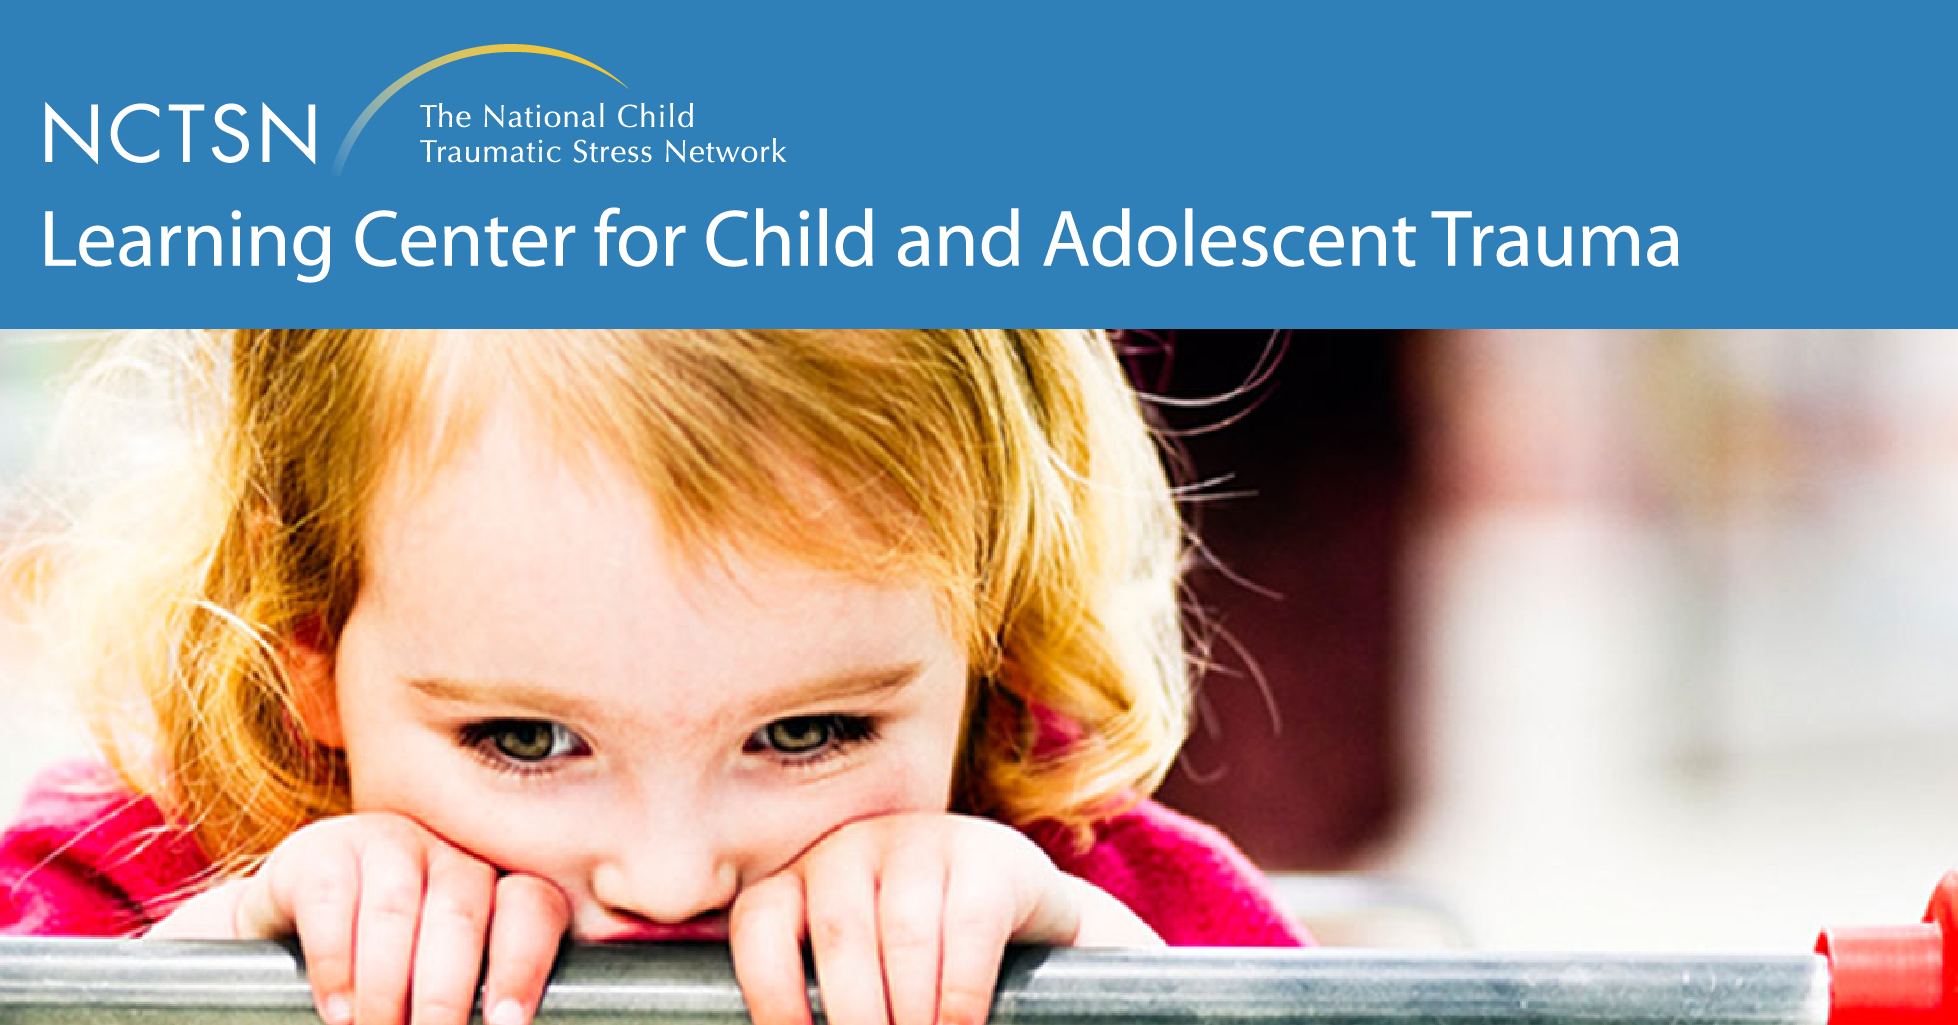 How To Help Traumatized Child In >> Nctsn Learning Center For Child And Adolescent Trauma